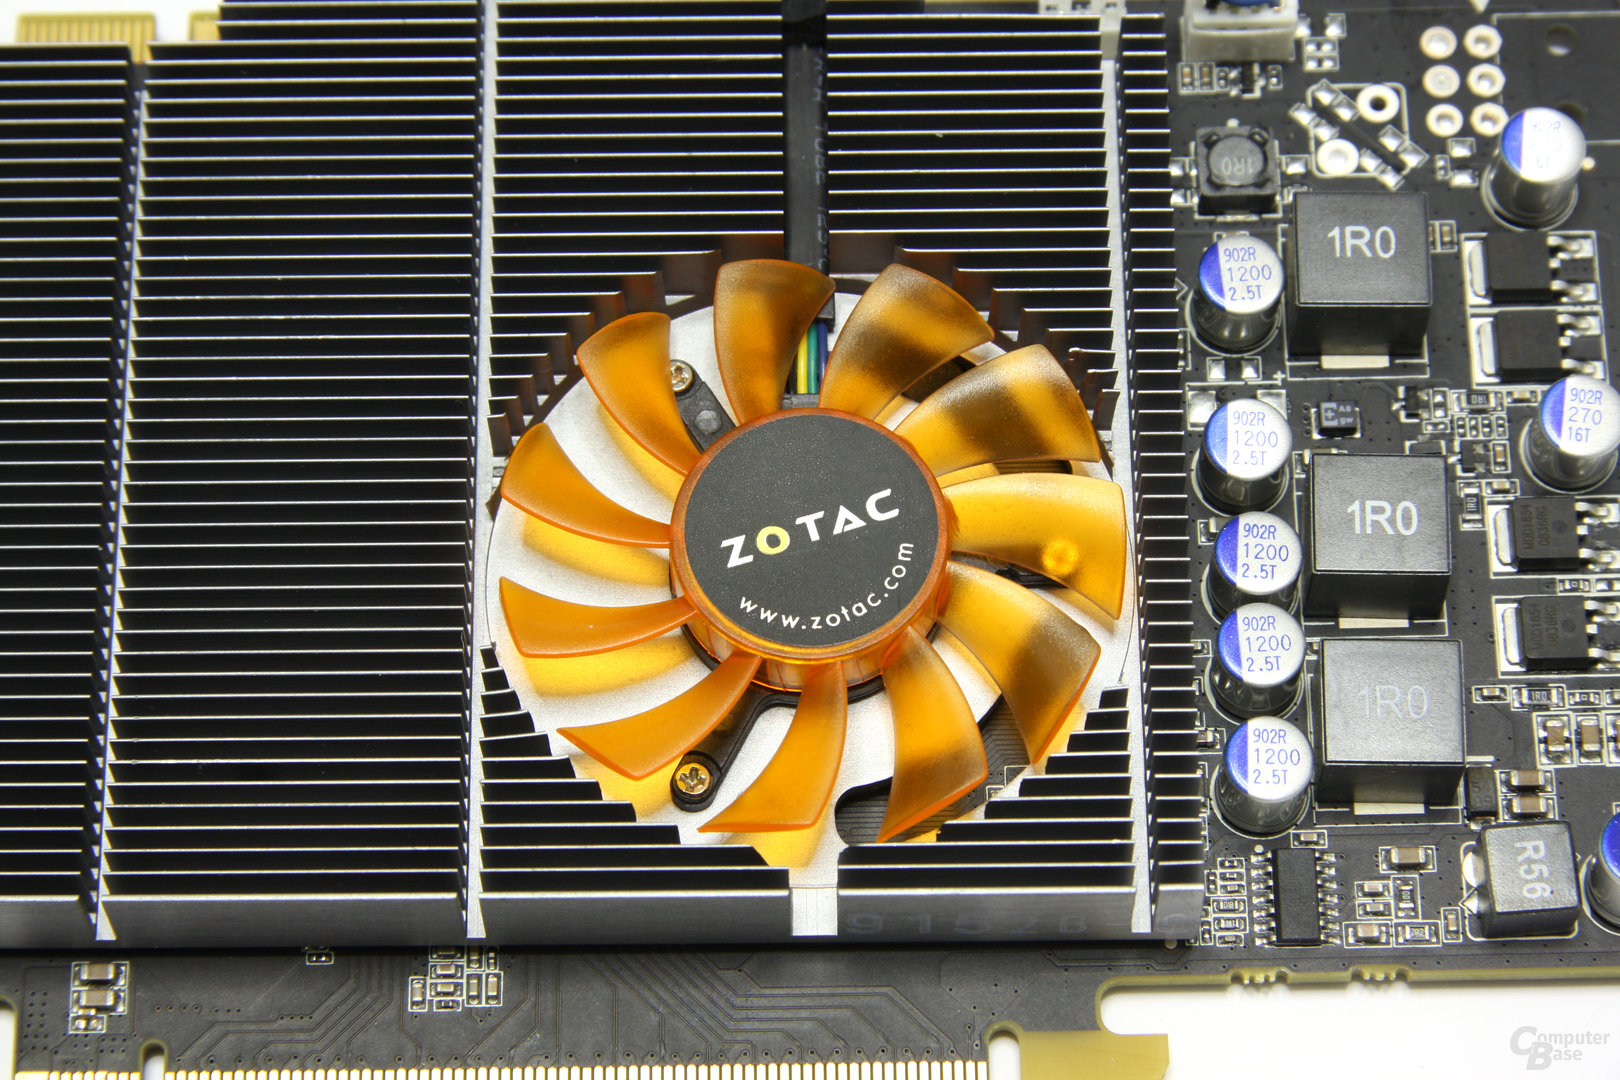 GeForce 9800 GT Eco Lüfter